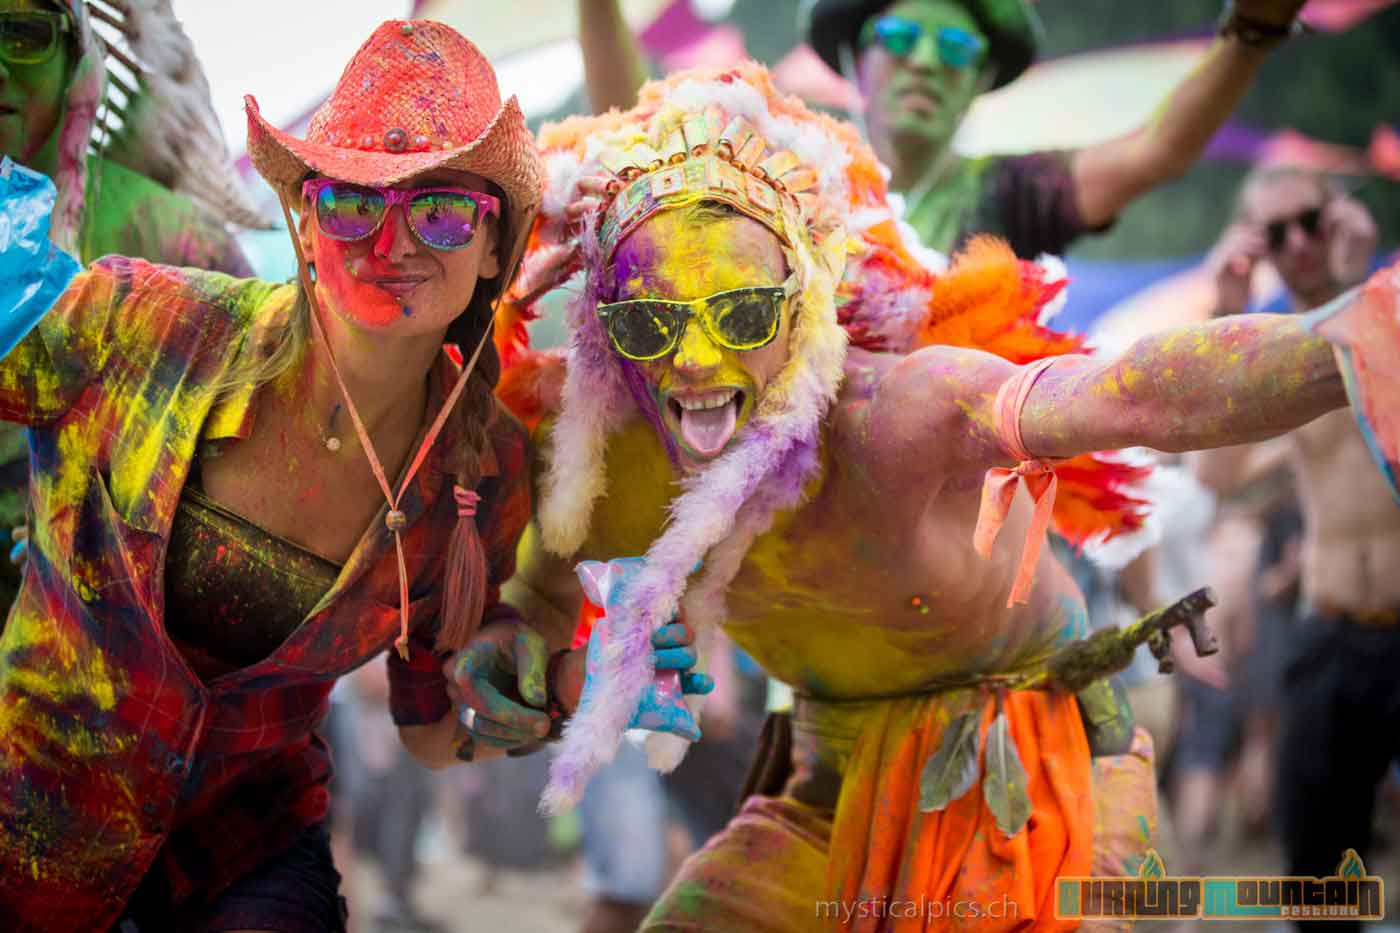 psychedelic-shirt-trance-clothing-sol-seed-of-life-burning-mountain-festival-3